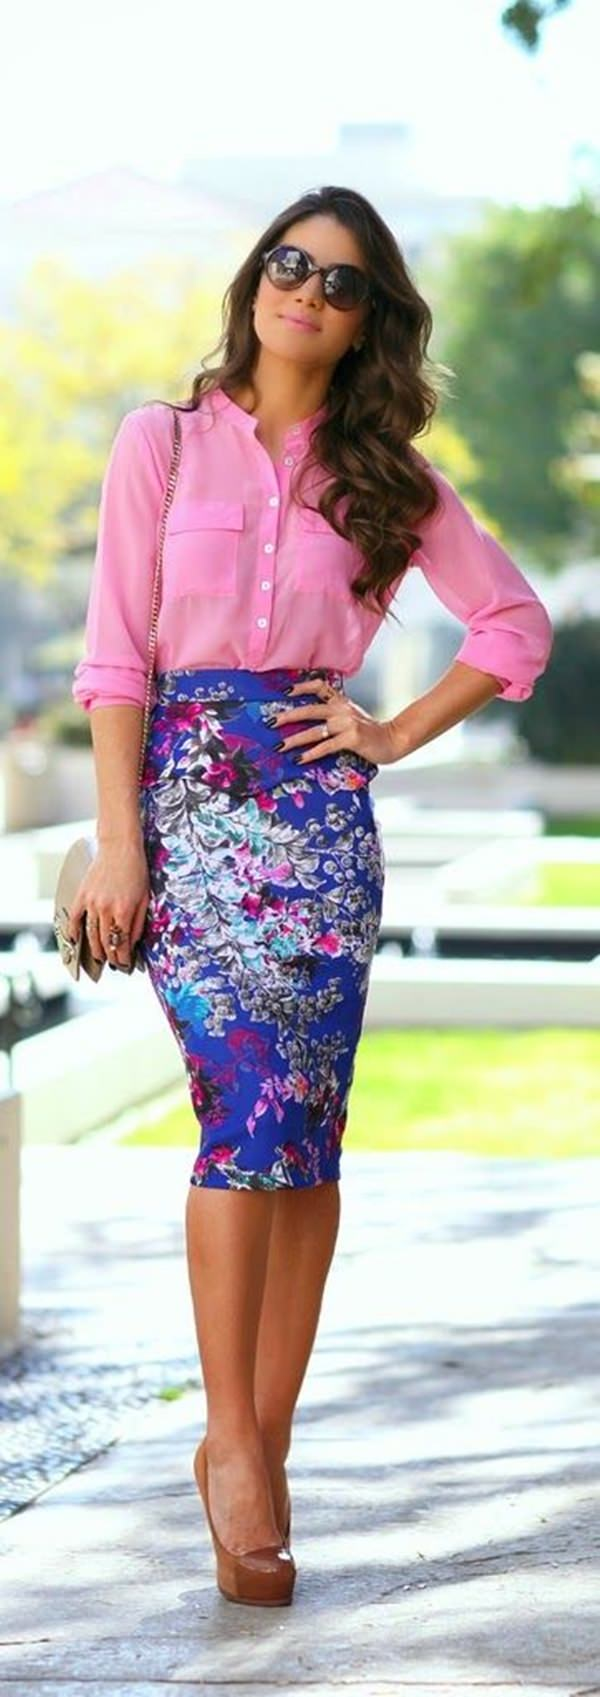 pencil skirt outfits 5